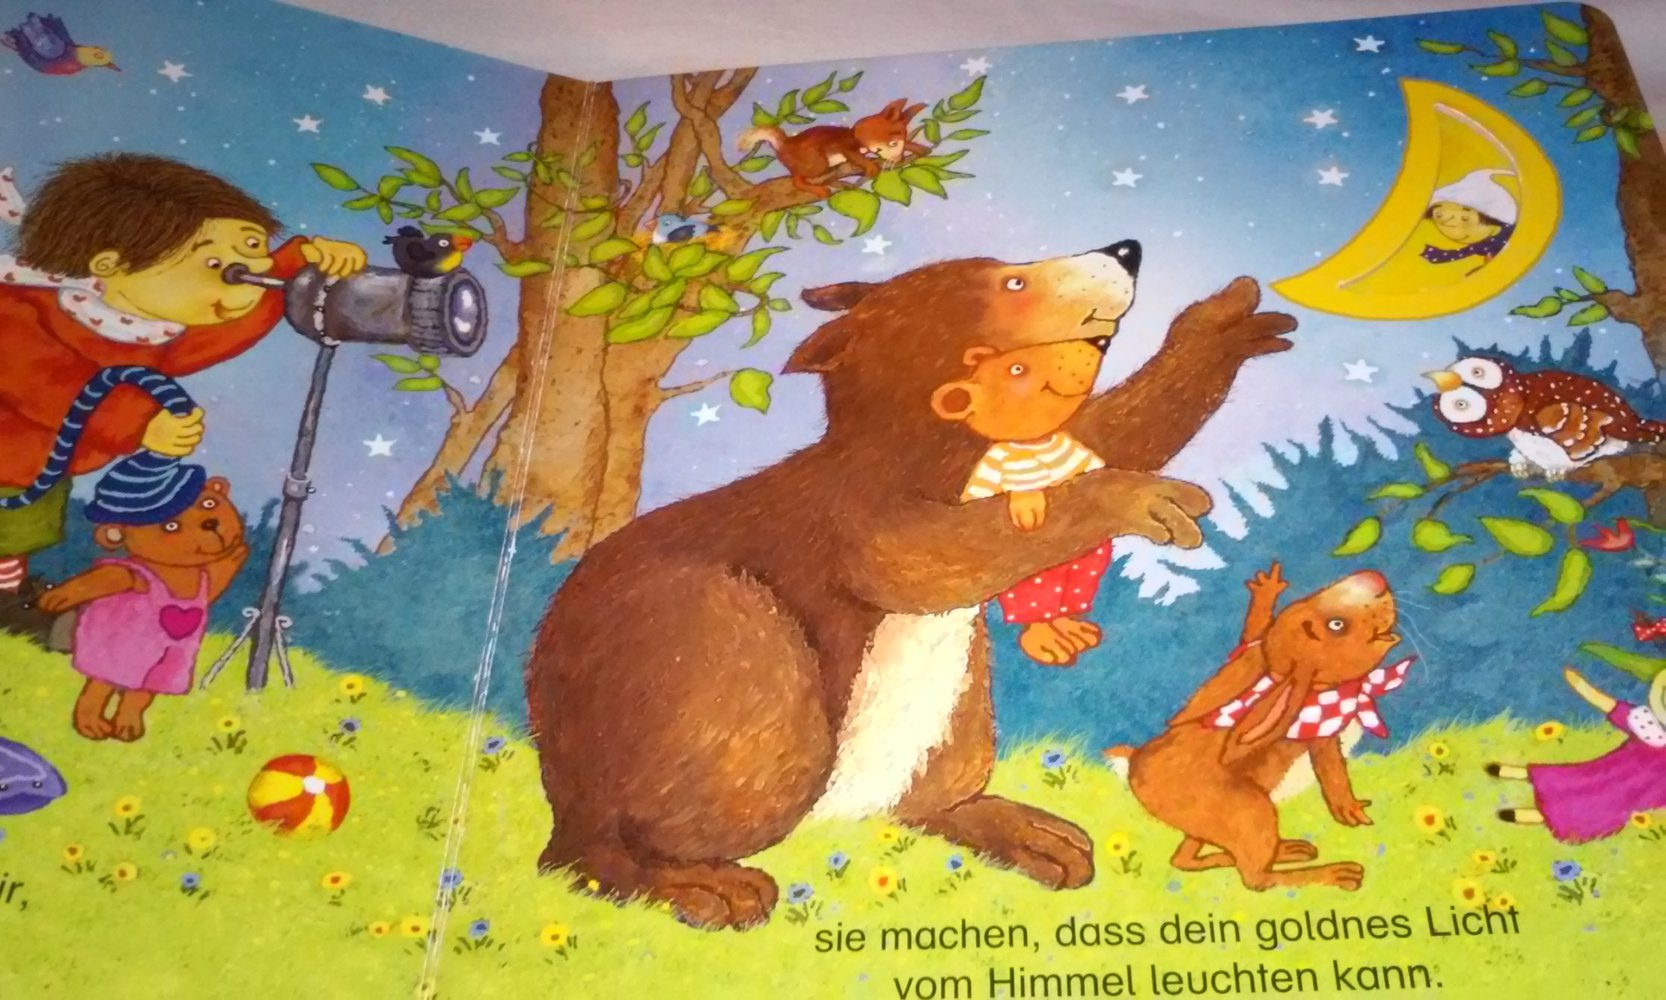 gute nacht goldner mond kinderbuch pappbilderbuch. Black Bedroom Furniture Sets. Home Design Ideas